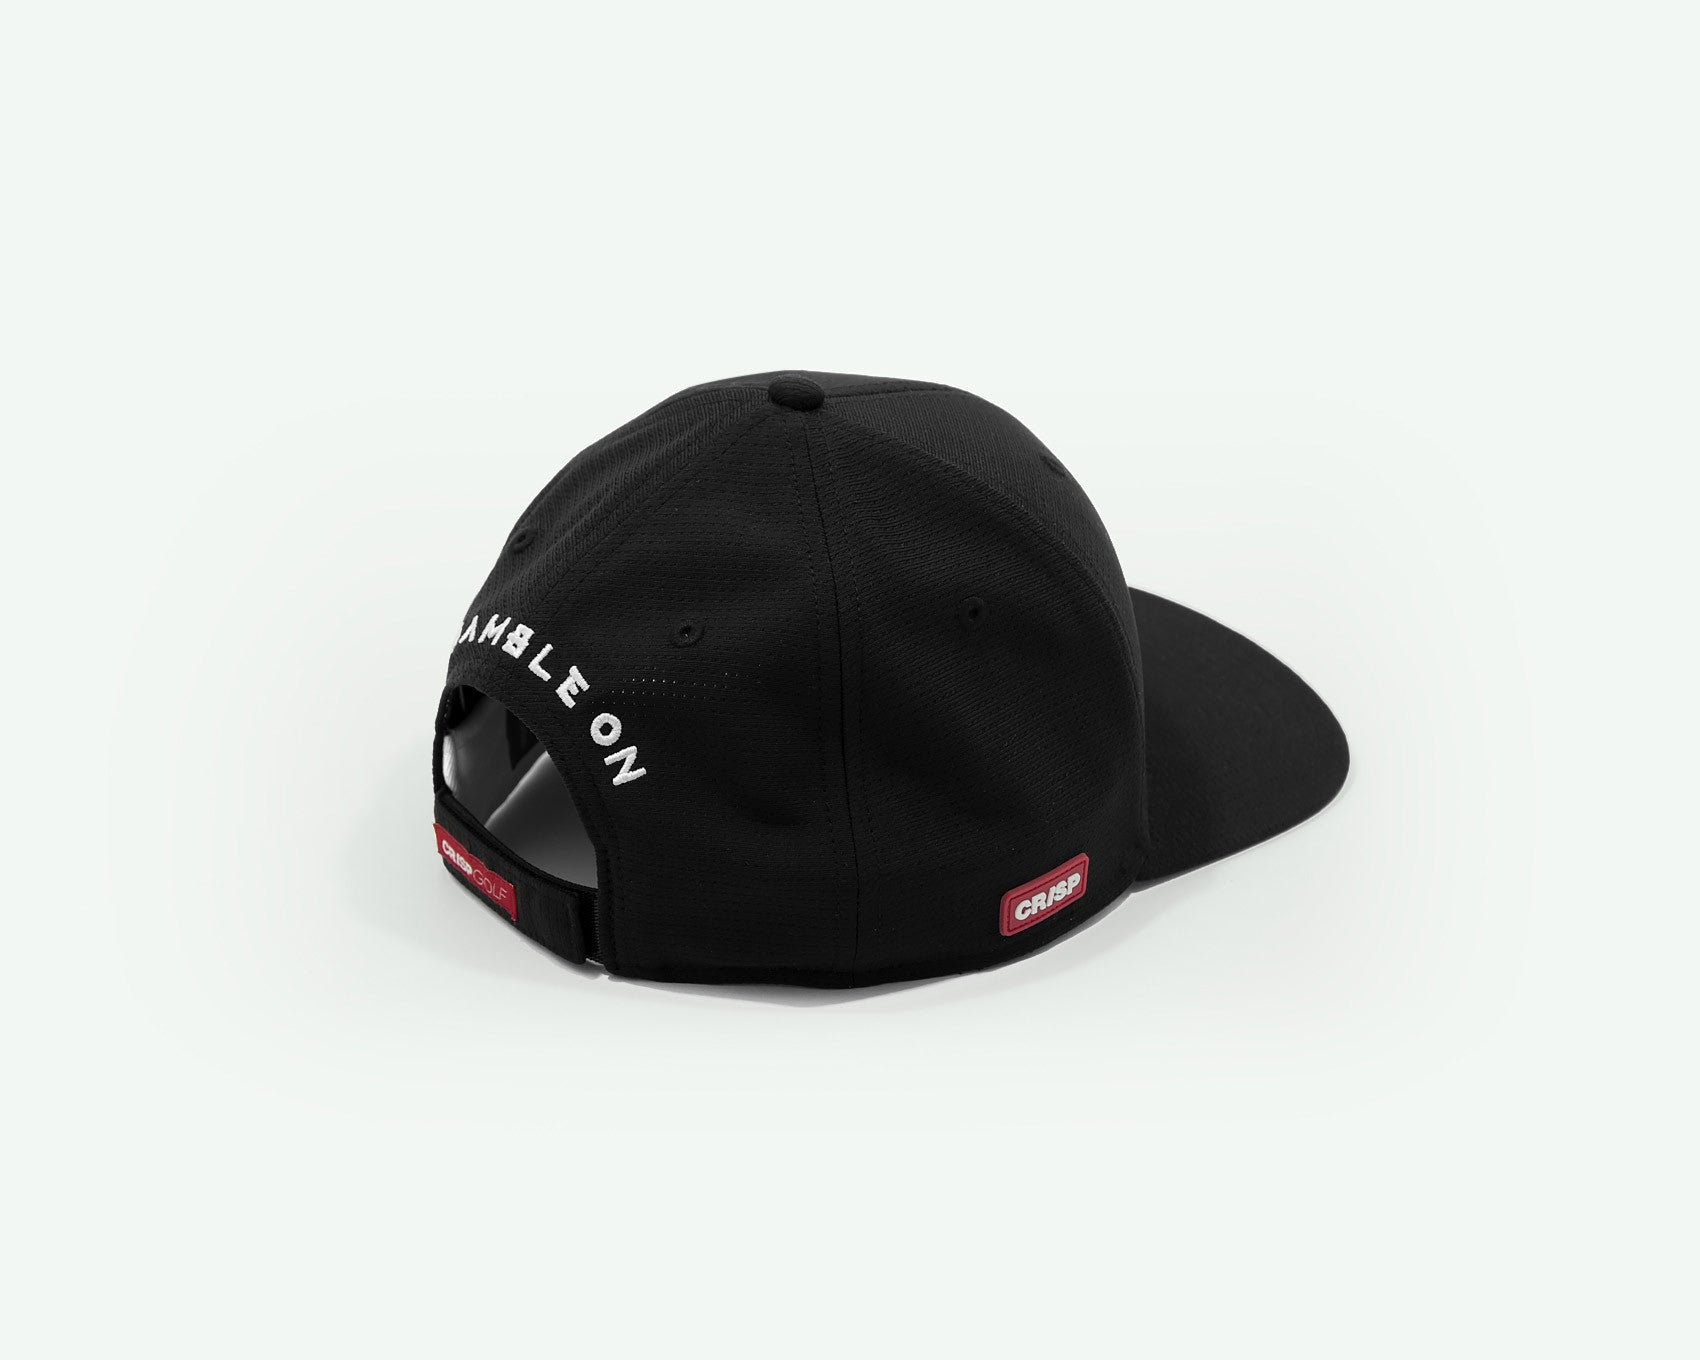 102 1up series black structured 6-panel golf cap with lightweight 'cool pass' mesh fabric and Velcro closure